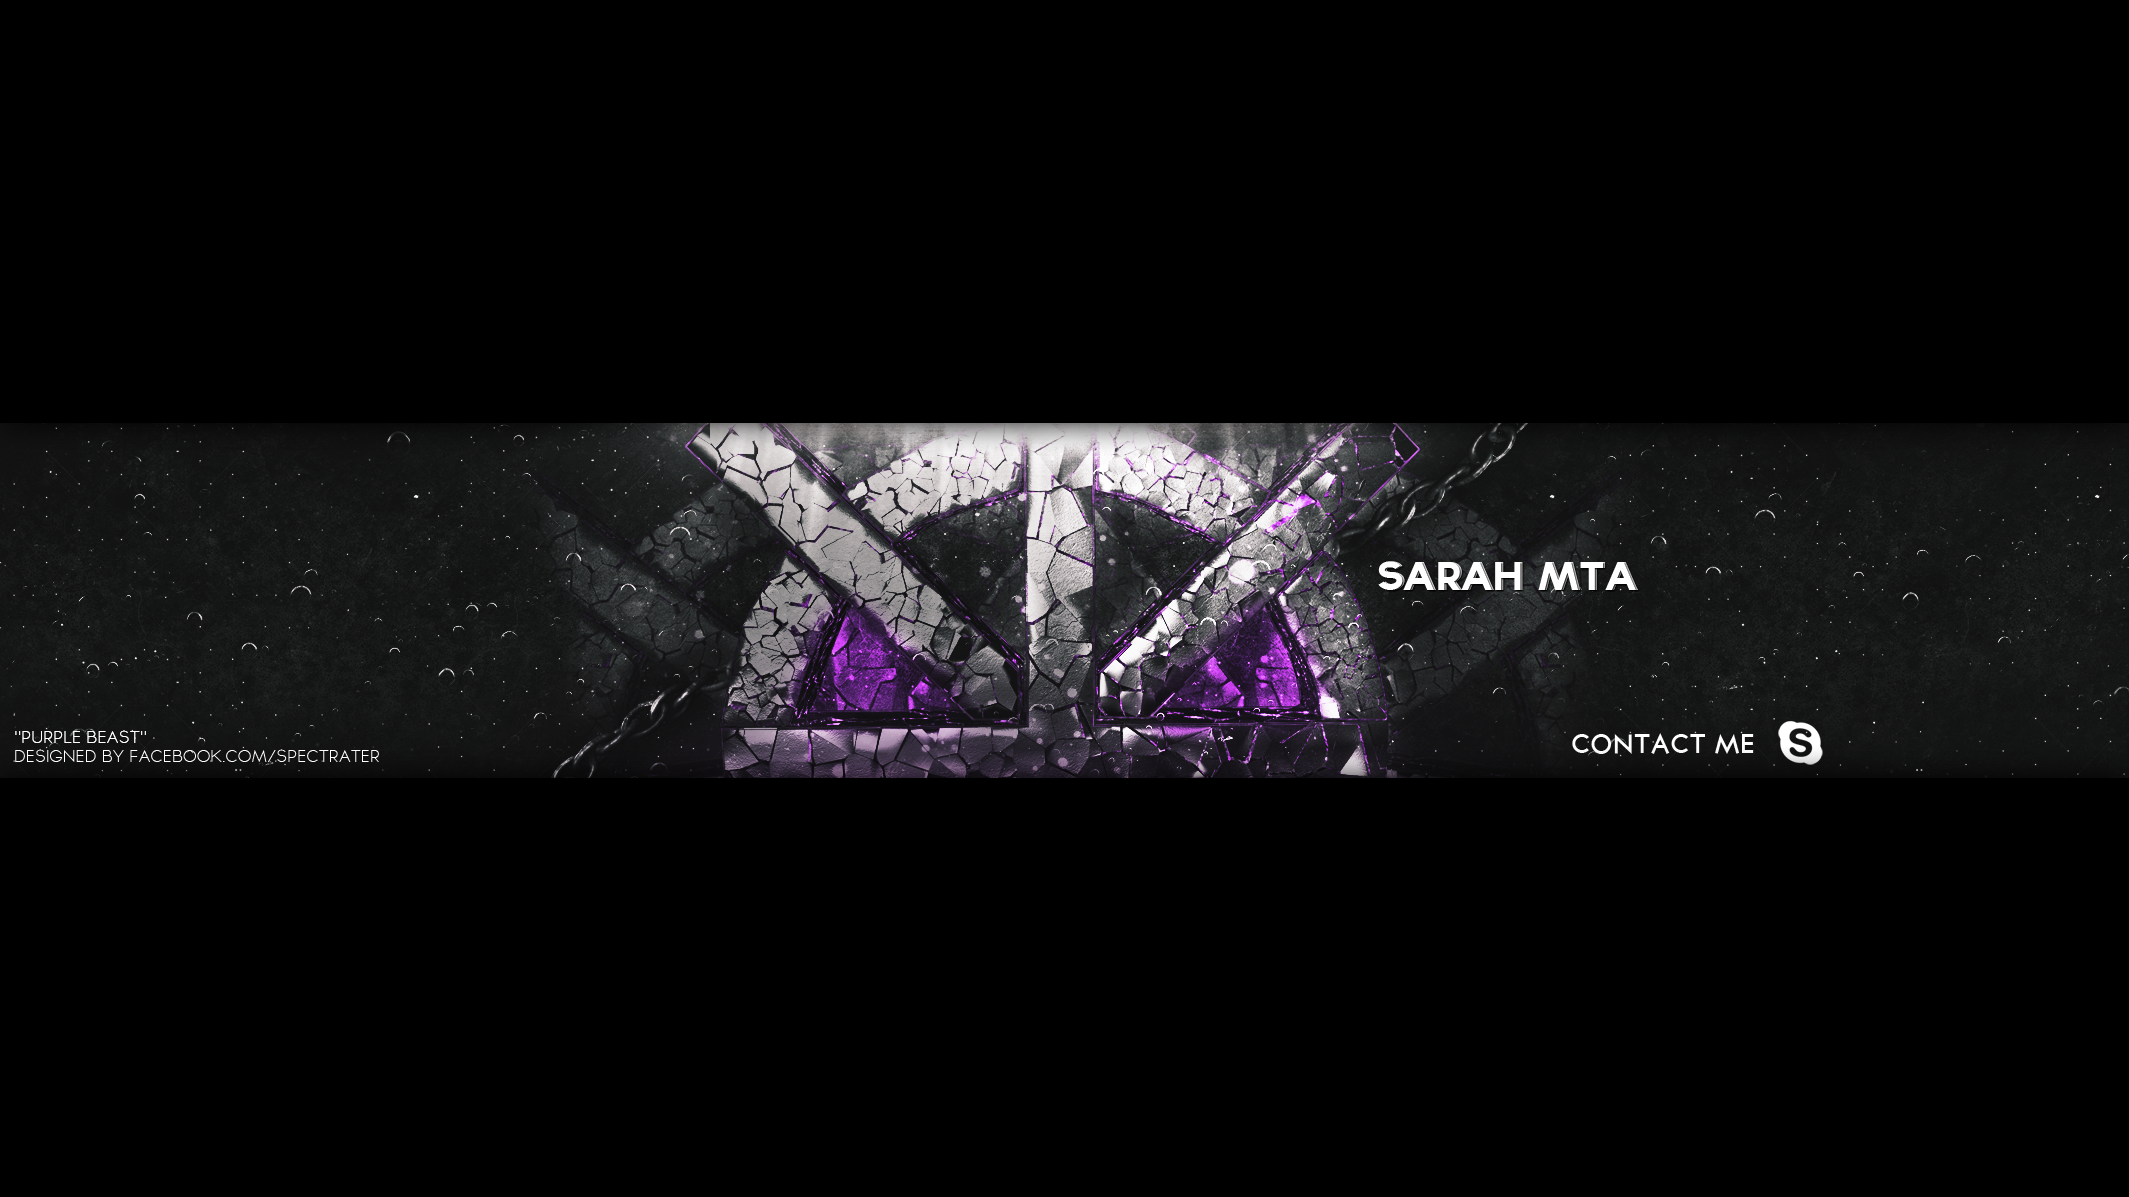 Youtube Banners by Spectrater on DeviantArt